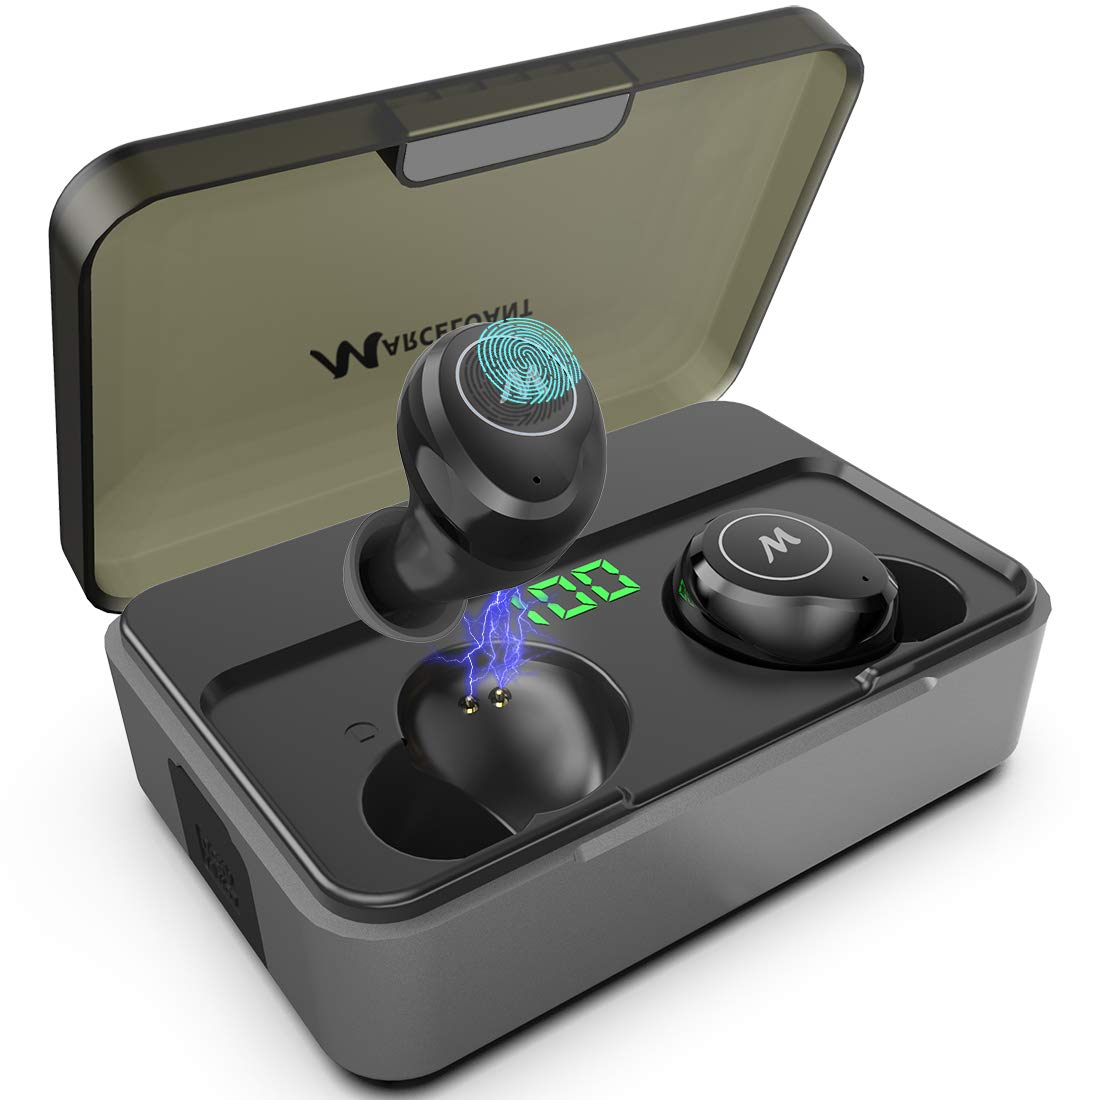 True Wireless Earbuds, Marceloant Bluetooth 5.0 Headphones High-Fidelity 3D Stereo Headphones in-Ear Built-in Mic Headset Premium Sound for iPhone and Android, 300H Cycle Play Time